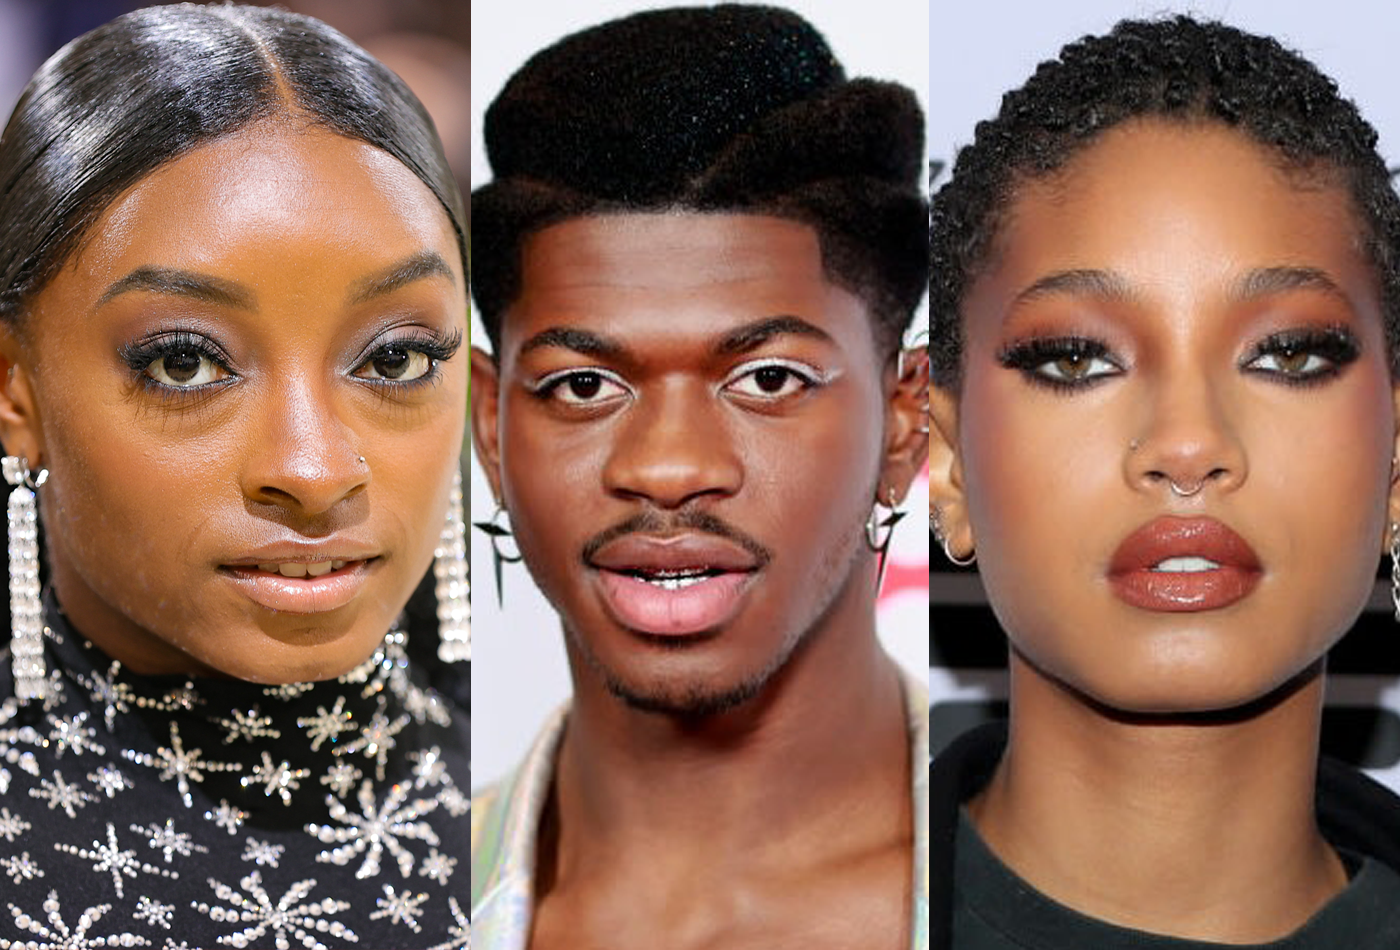 Here Are Some Of The Youngest Faces On TIME's 100 Most Influential People List